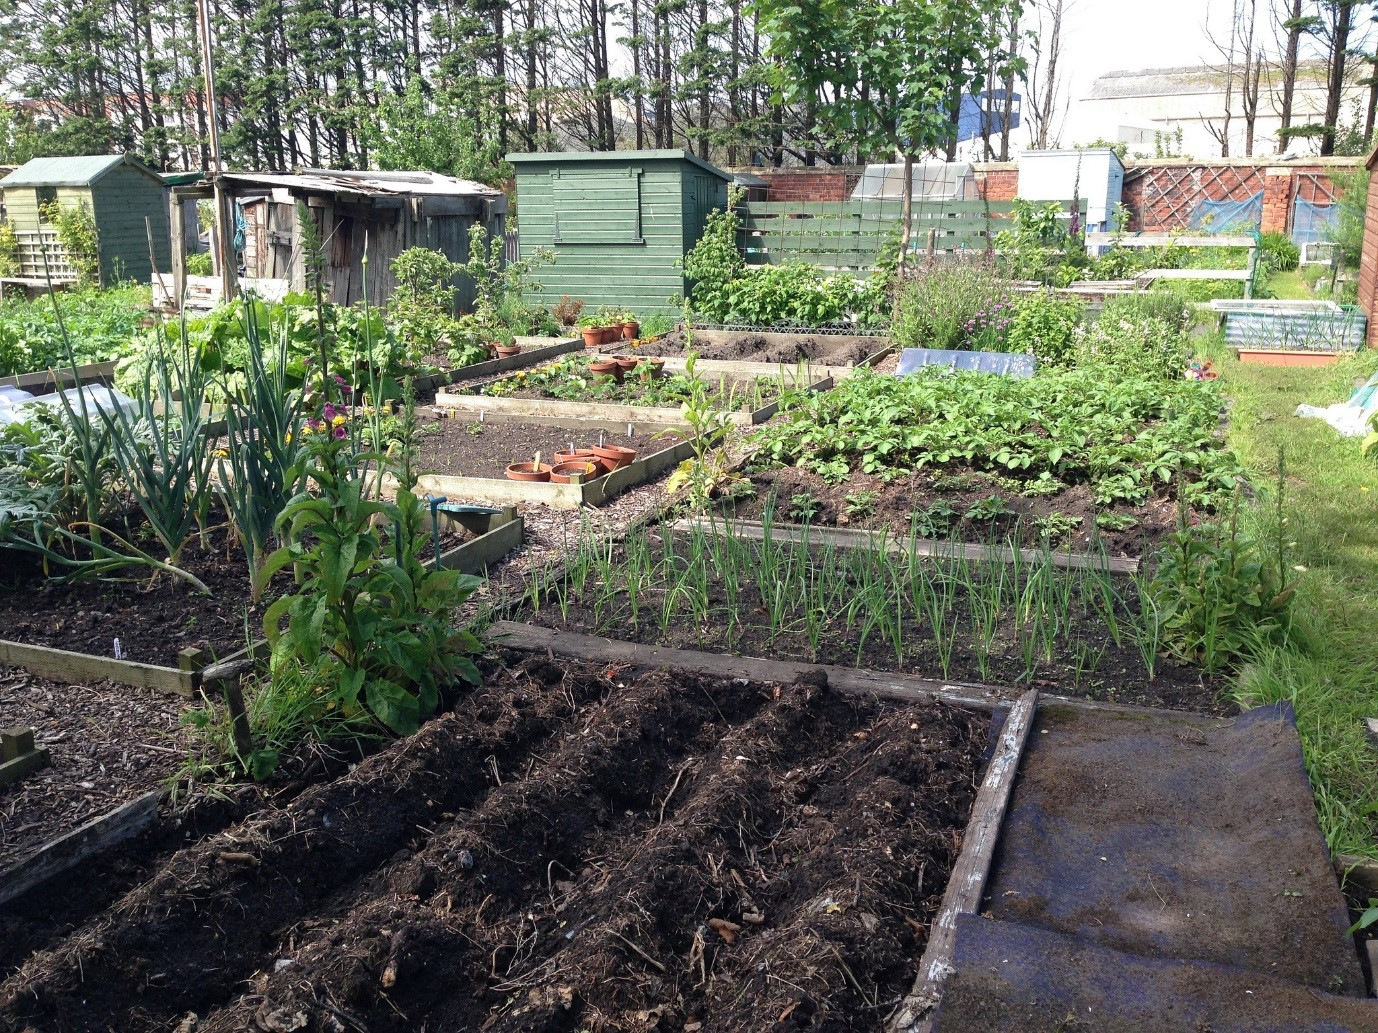 Although There Are No Official Guidelines Dictating The Size An Allotment Should Be Accepted Is Roximately 250 Square Metres